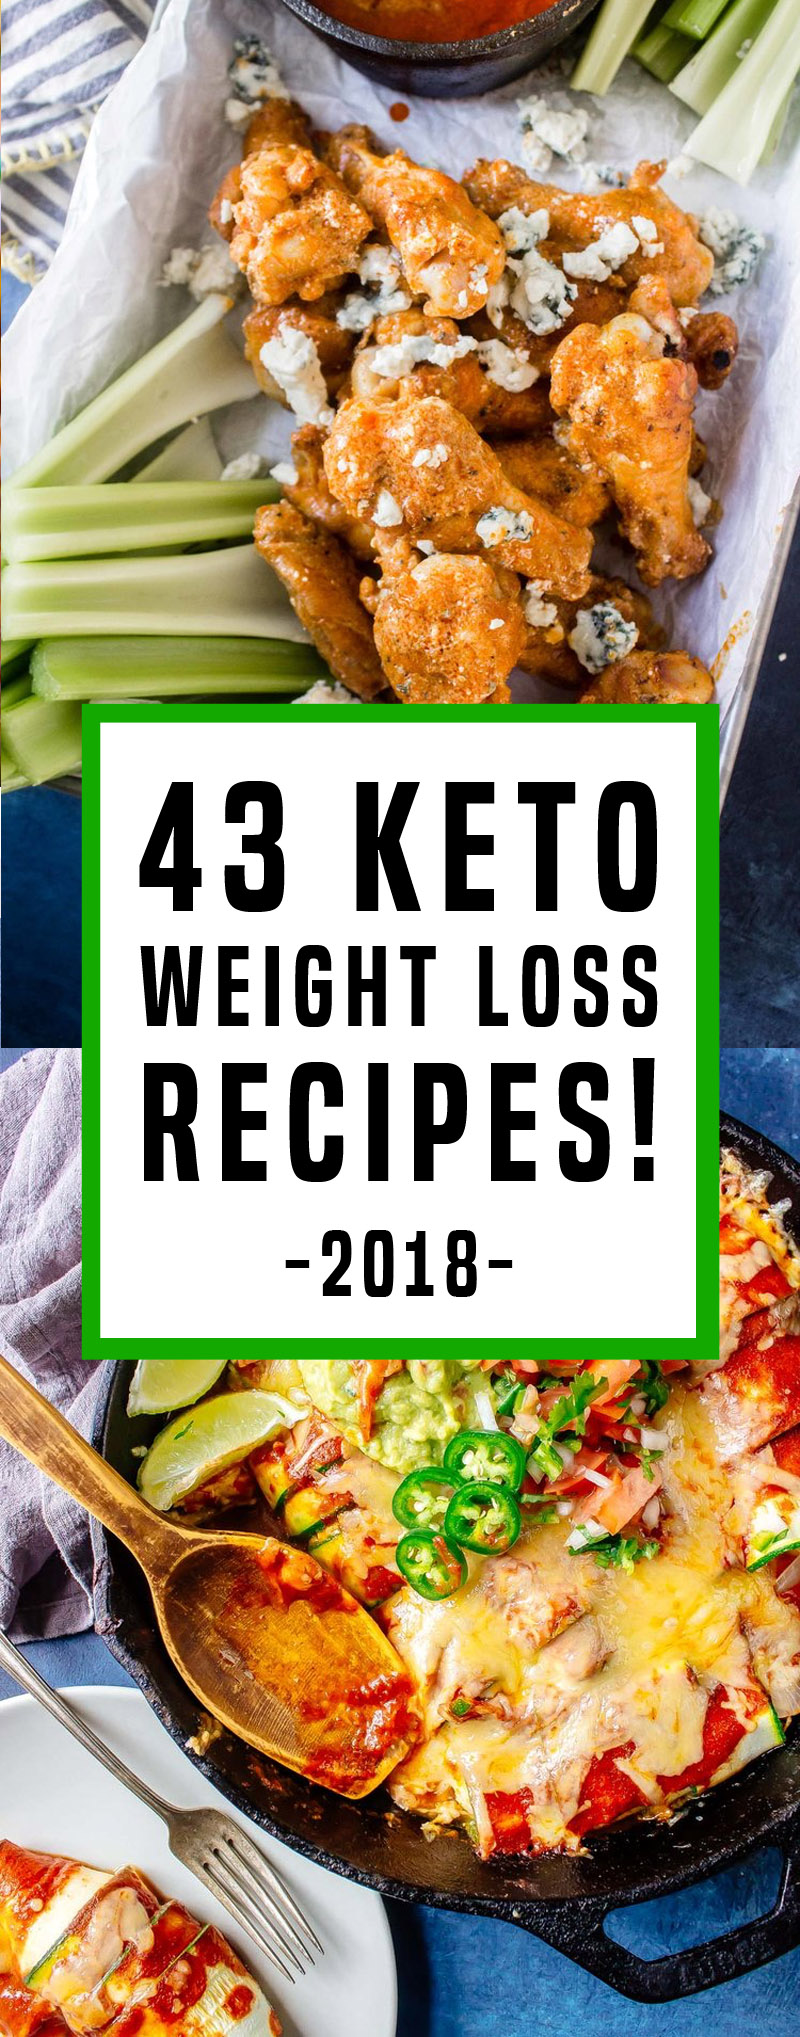 43 Keto Diet Recipes That Will Help You Burn Fat Fast In 2018 Trimmedandtoned